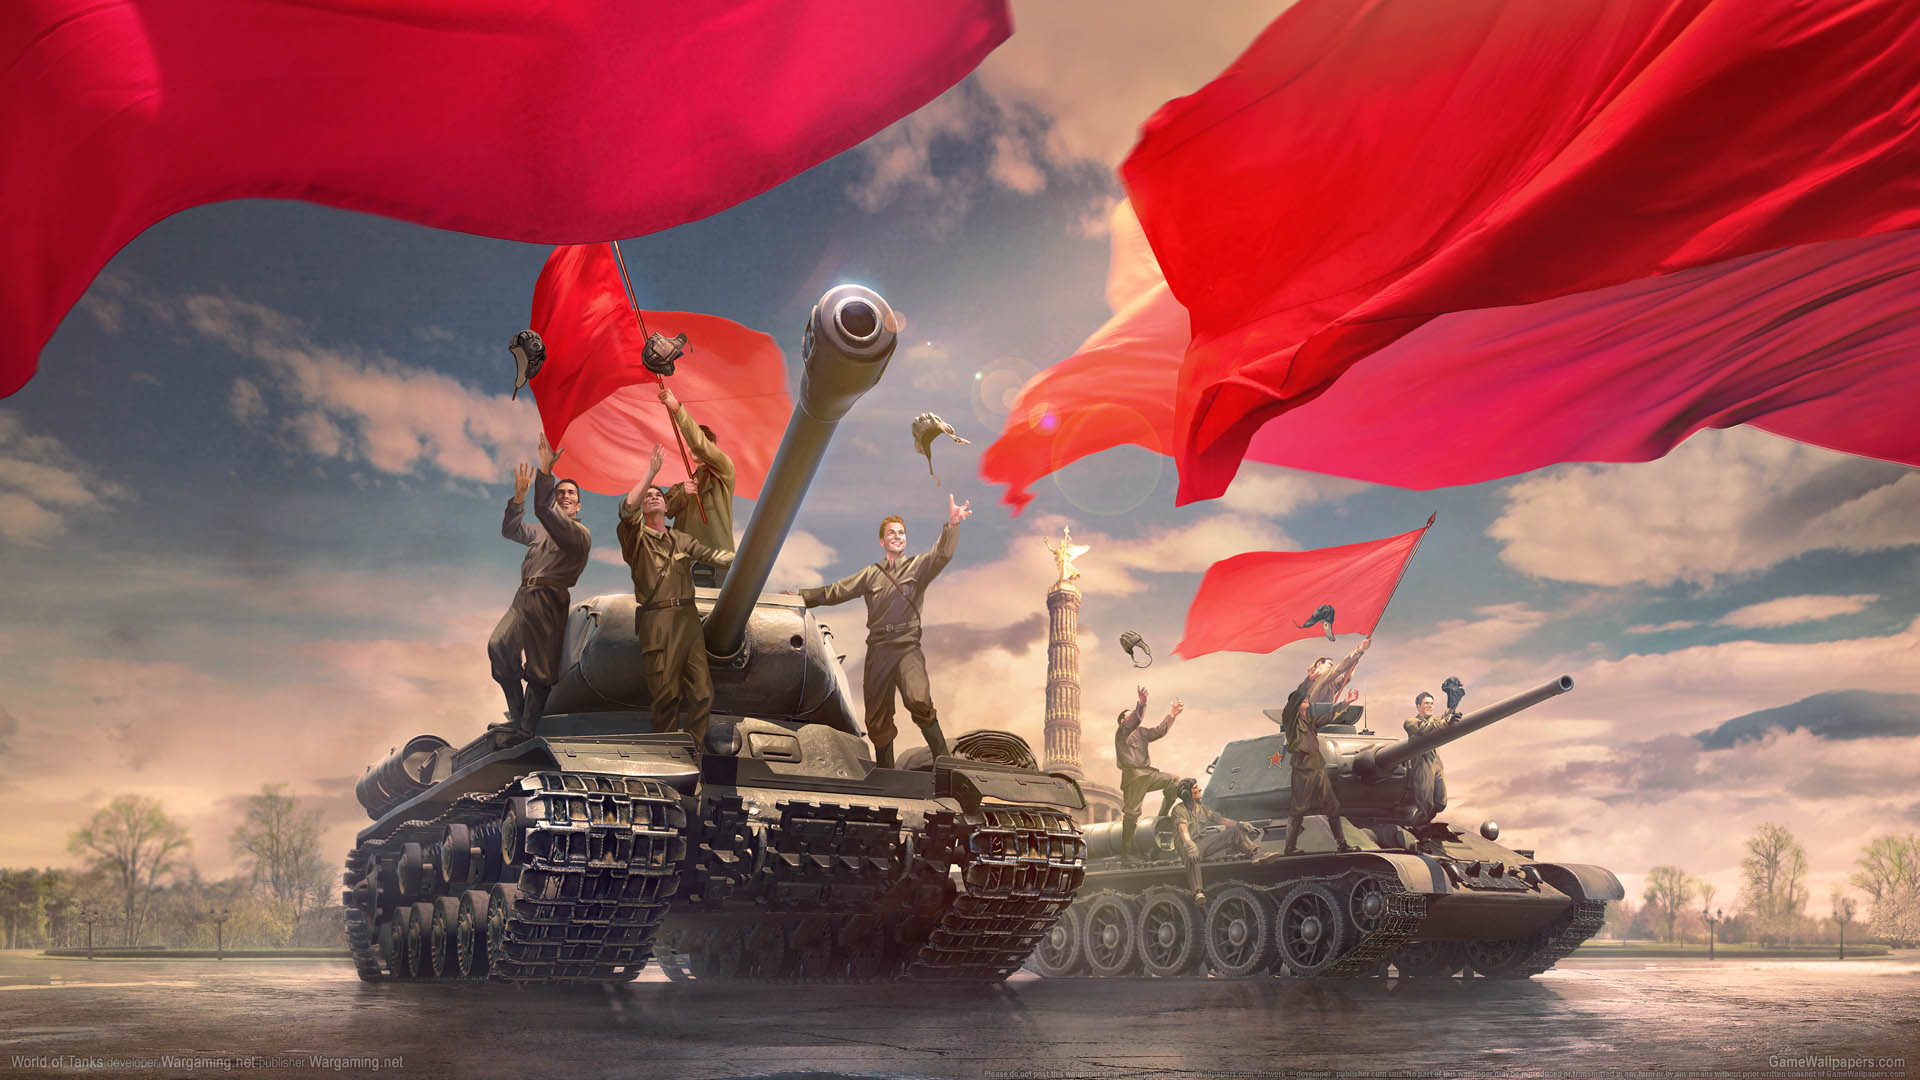 World of Tanks wallpaper 19 1920x1080